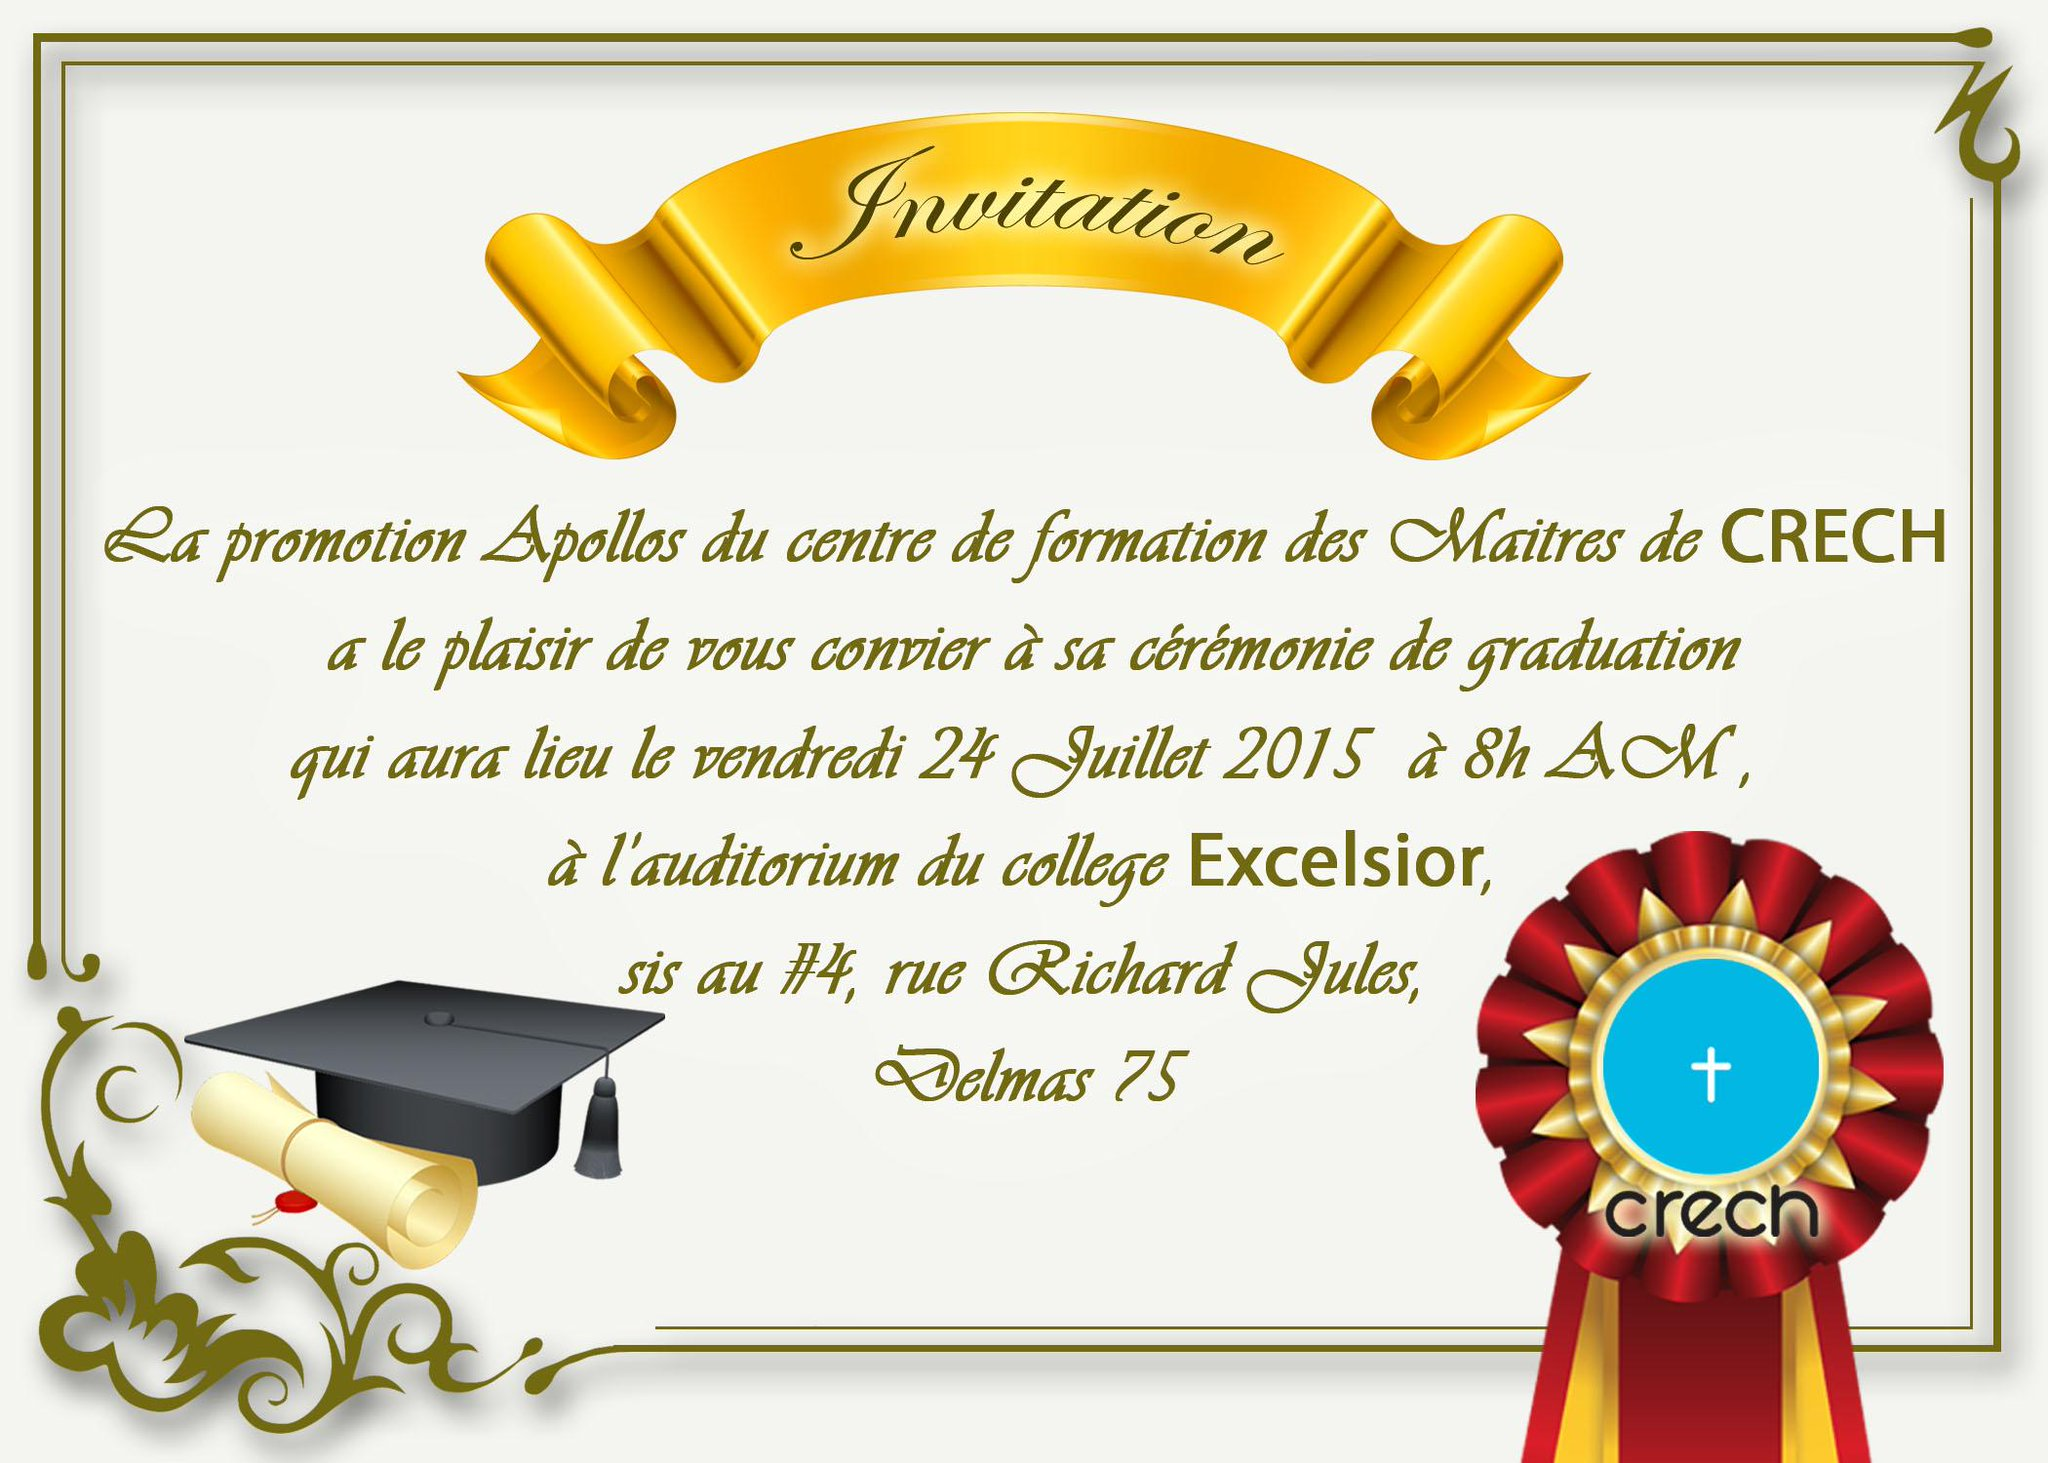 crech on twitter carte d 39 invitation la c r monie de graduation de la promotion apollos. Black Bedroom Furniture Sets. Home Design Ideas